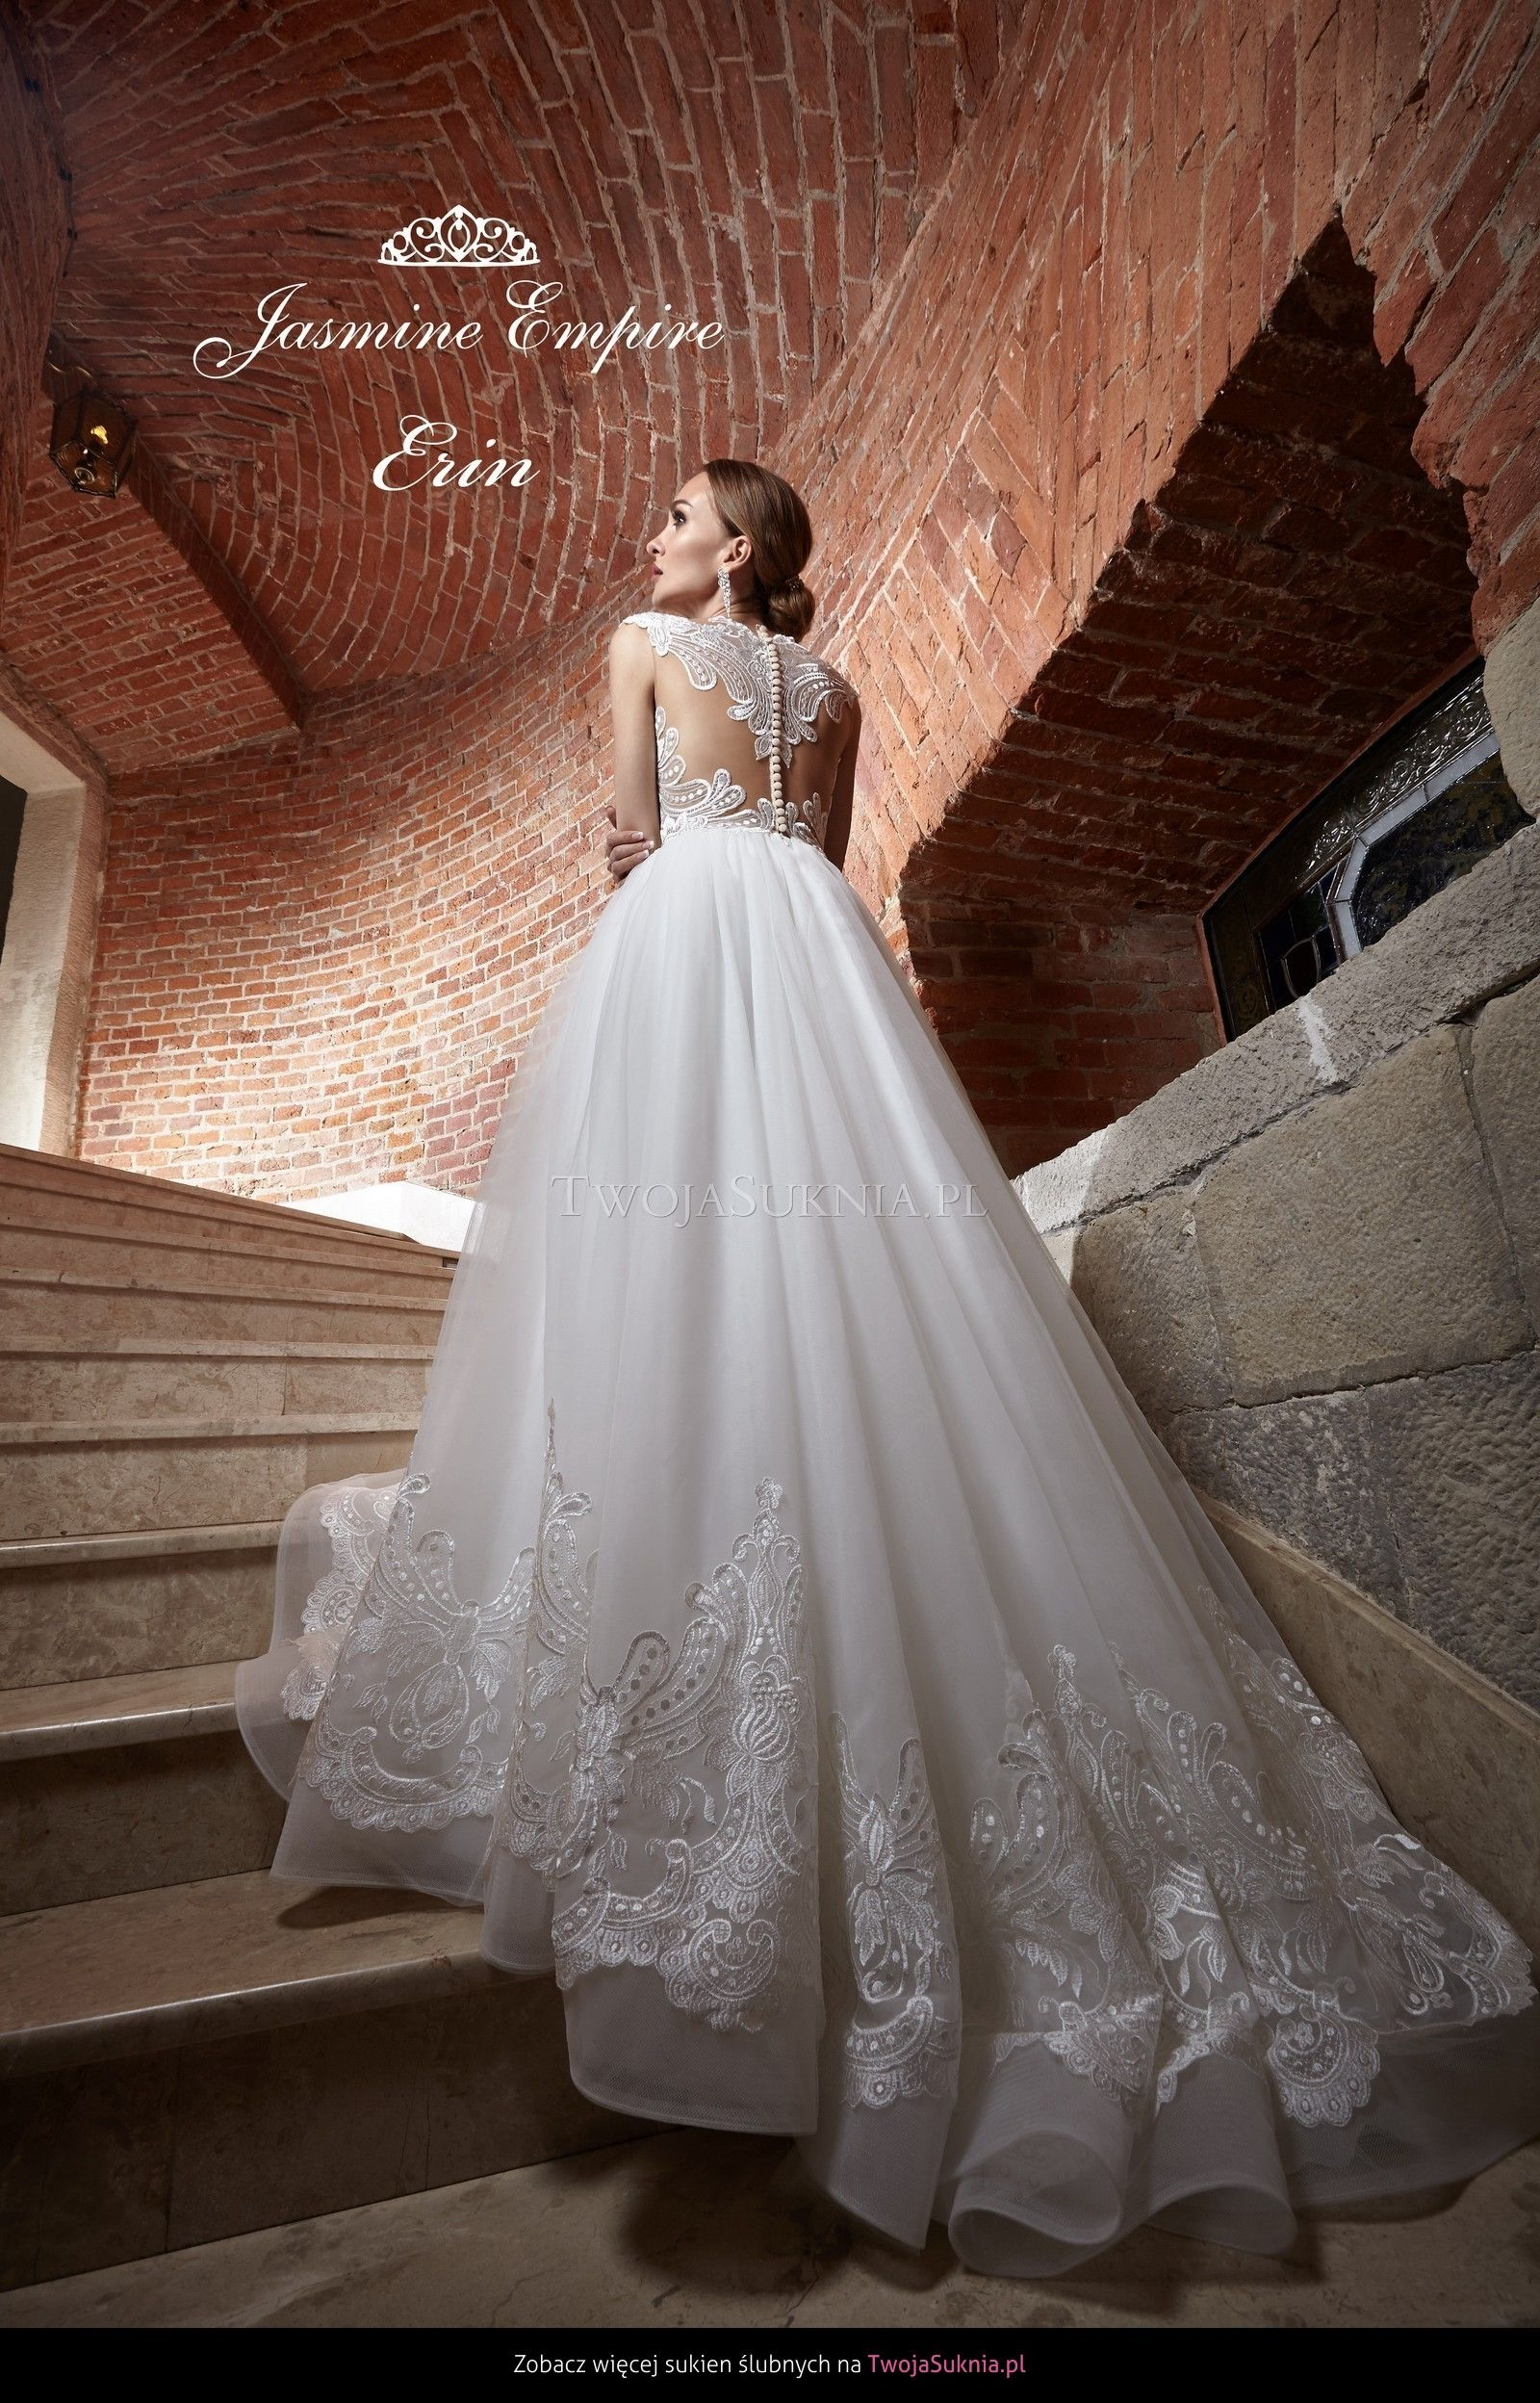 Jasmine Empire Erin Obsession Suknie ślubne Wedding Dresses